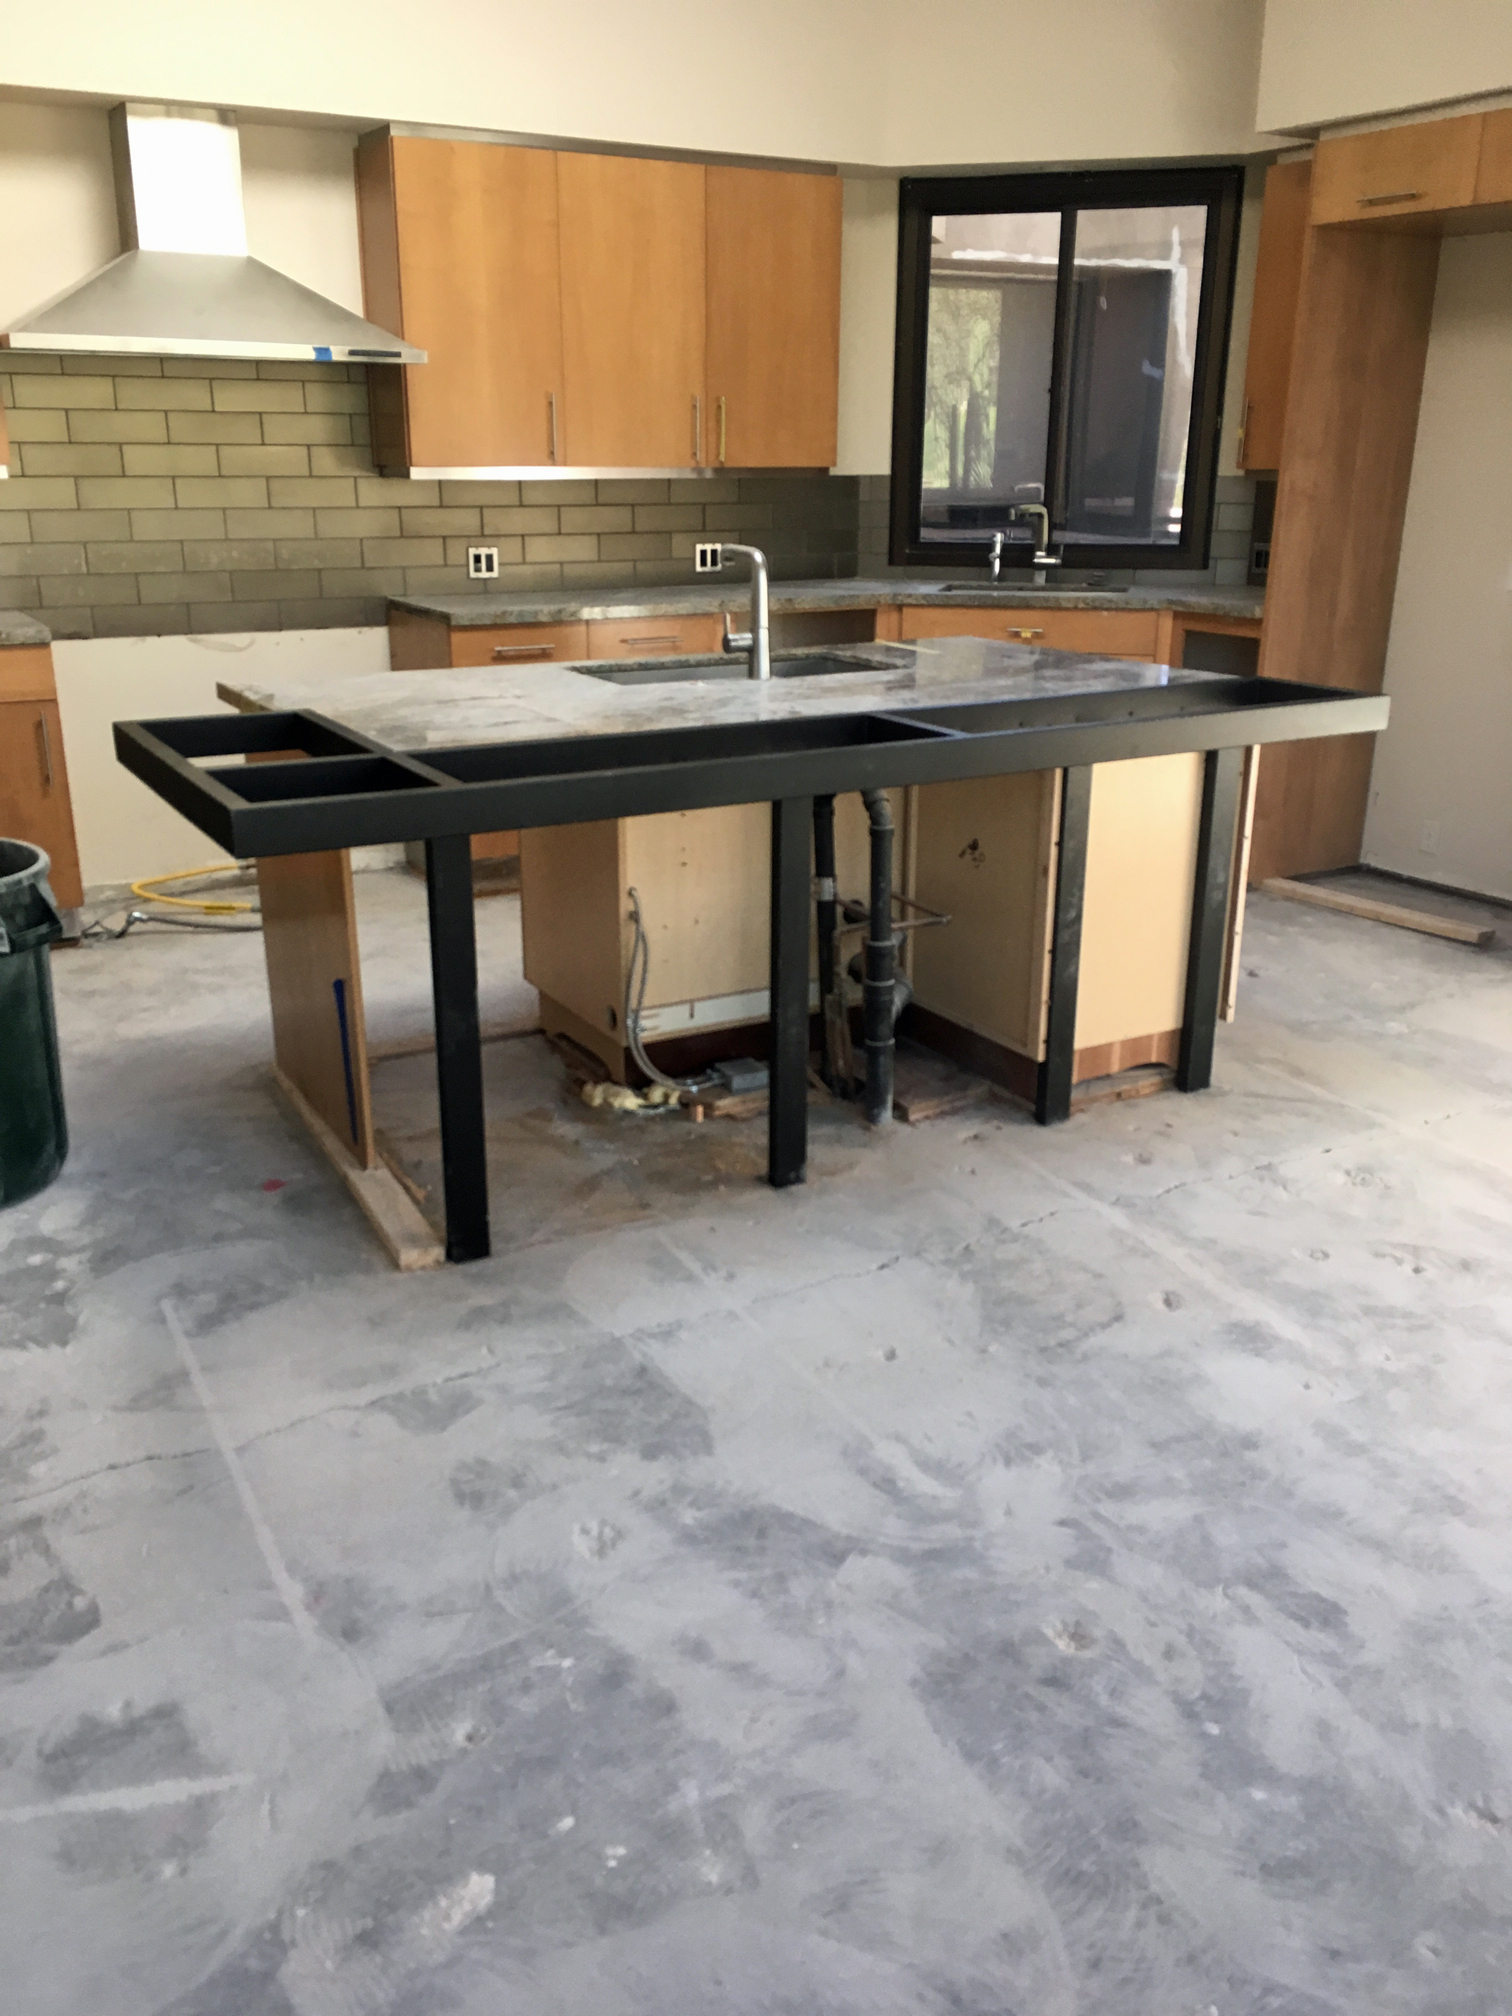 Kitchen island with bar top Build In Stove Kitchen Island Support Frame Milestone Homes Milestone Homes Kitchenislandbartopsupp